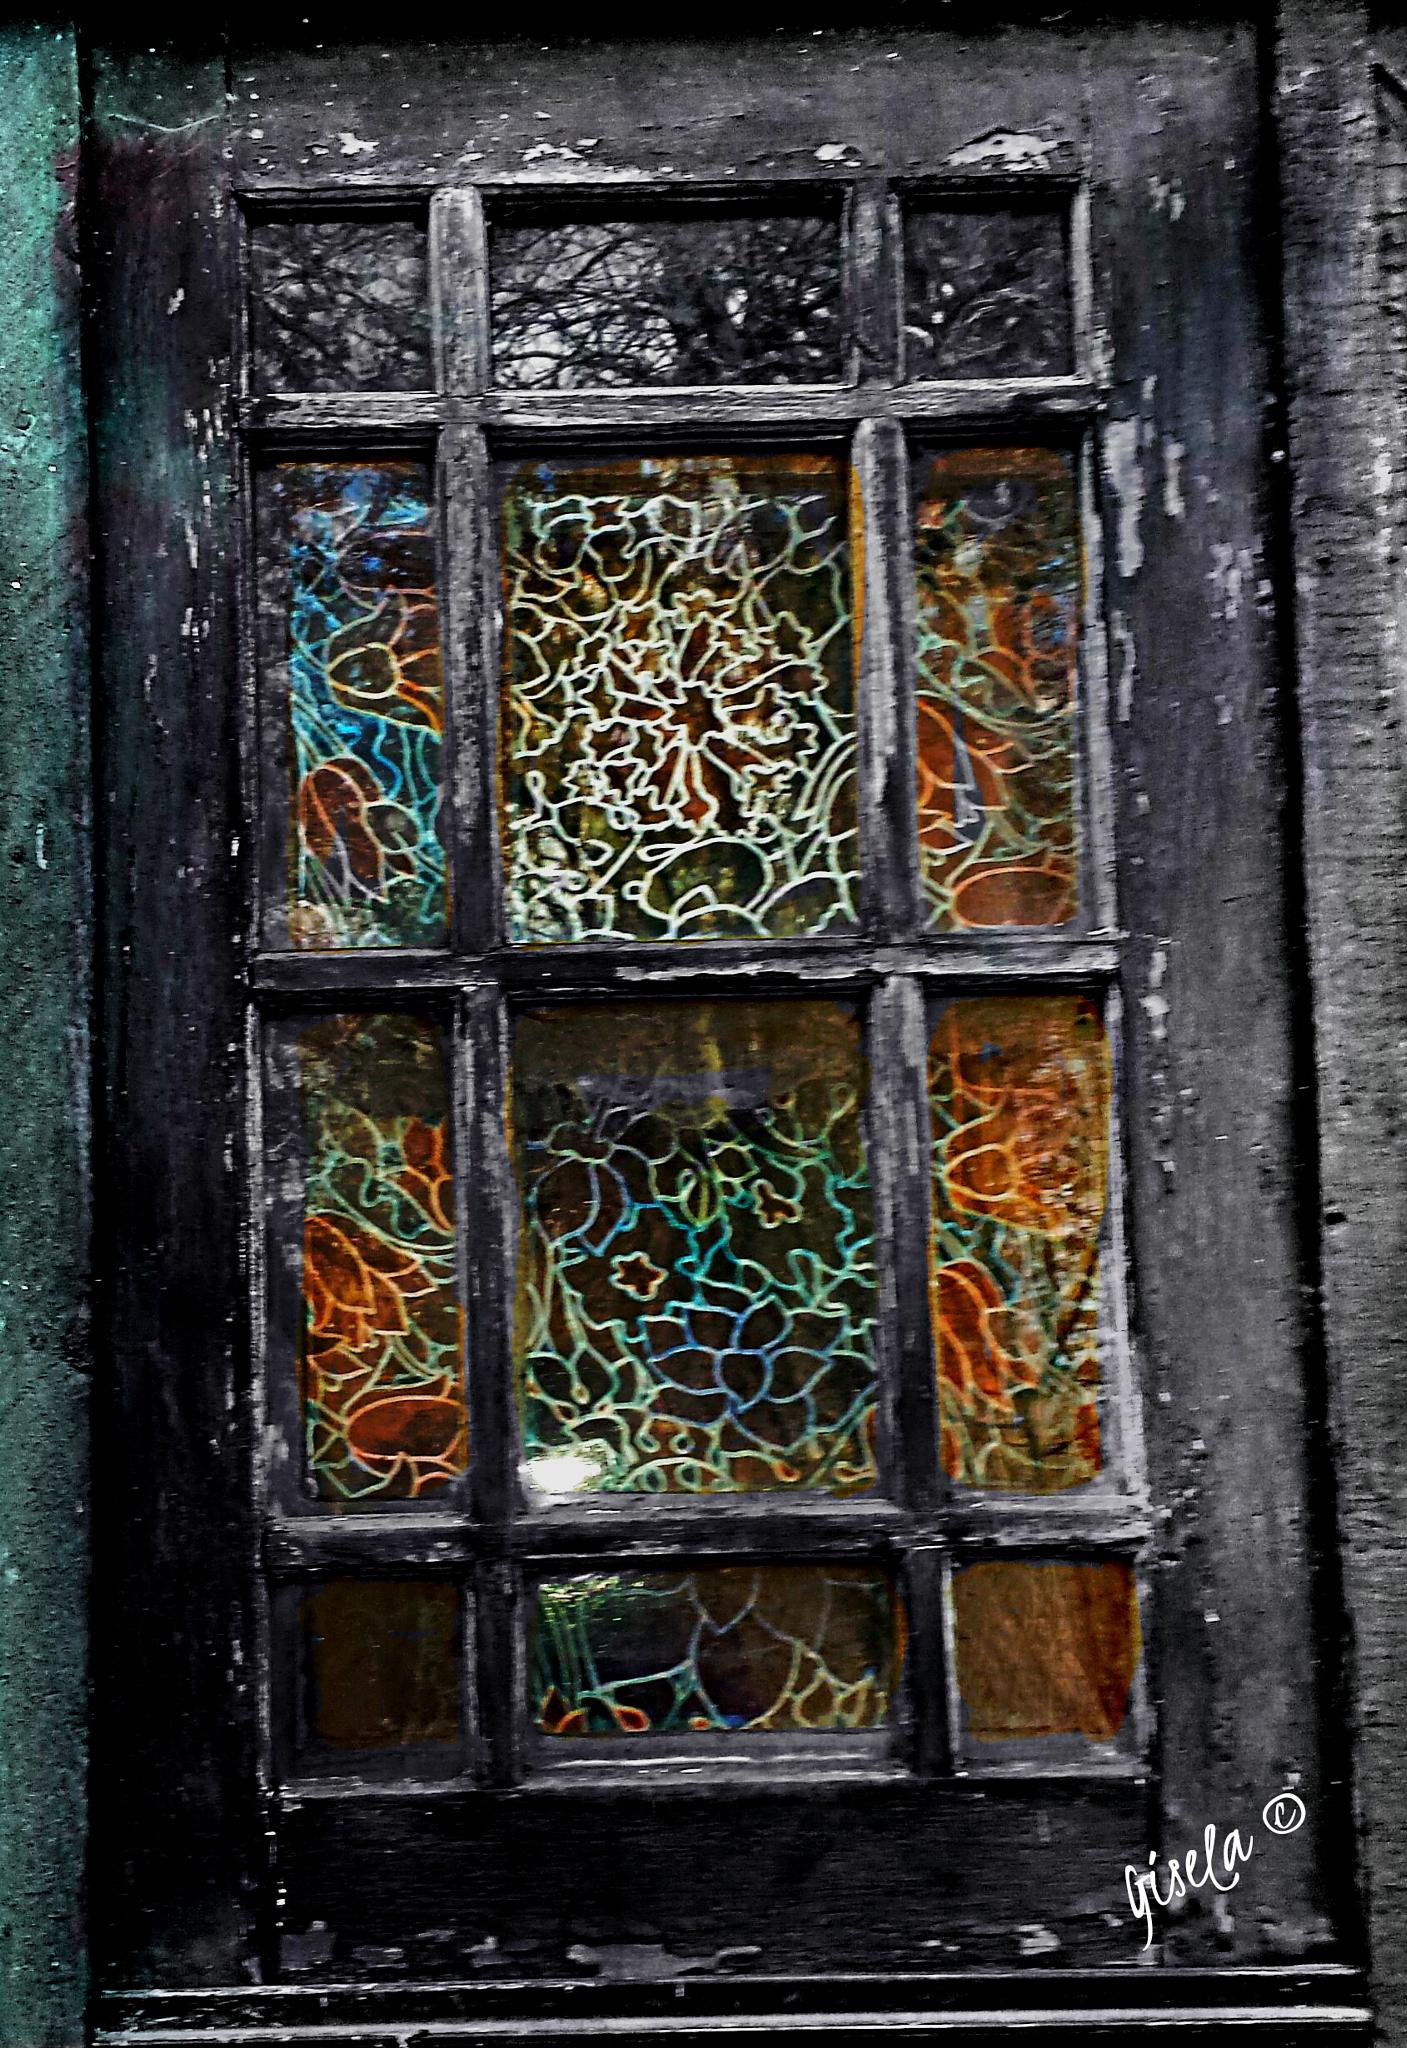 The window from the past by Gisela Tenggren